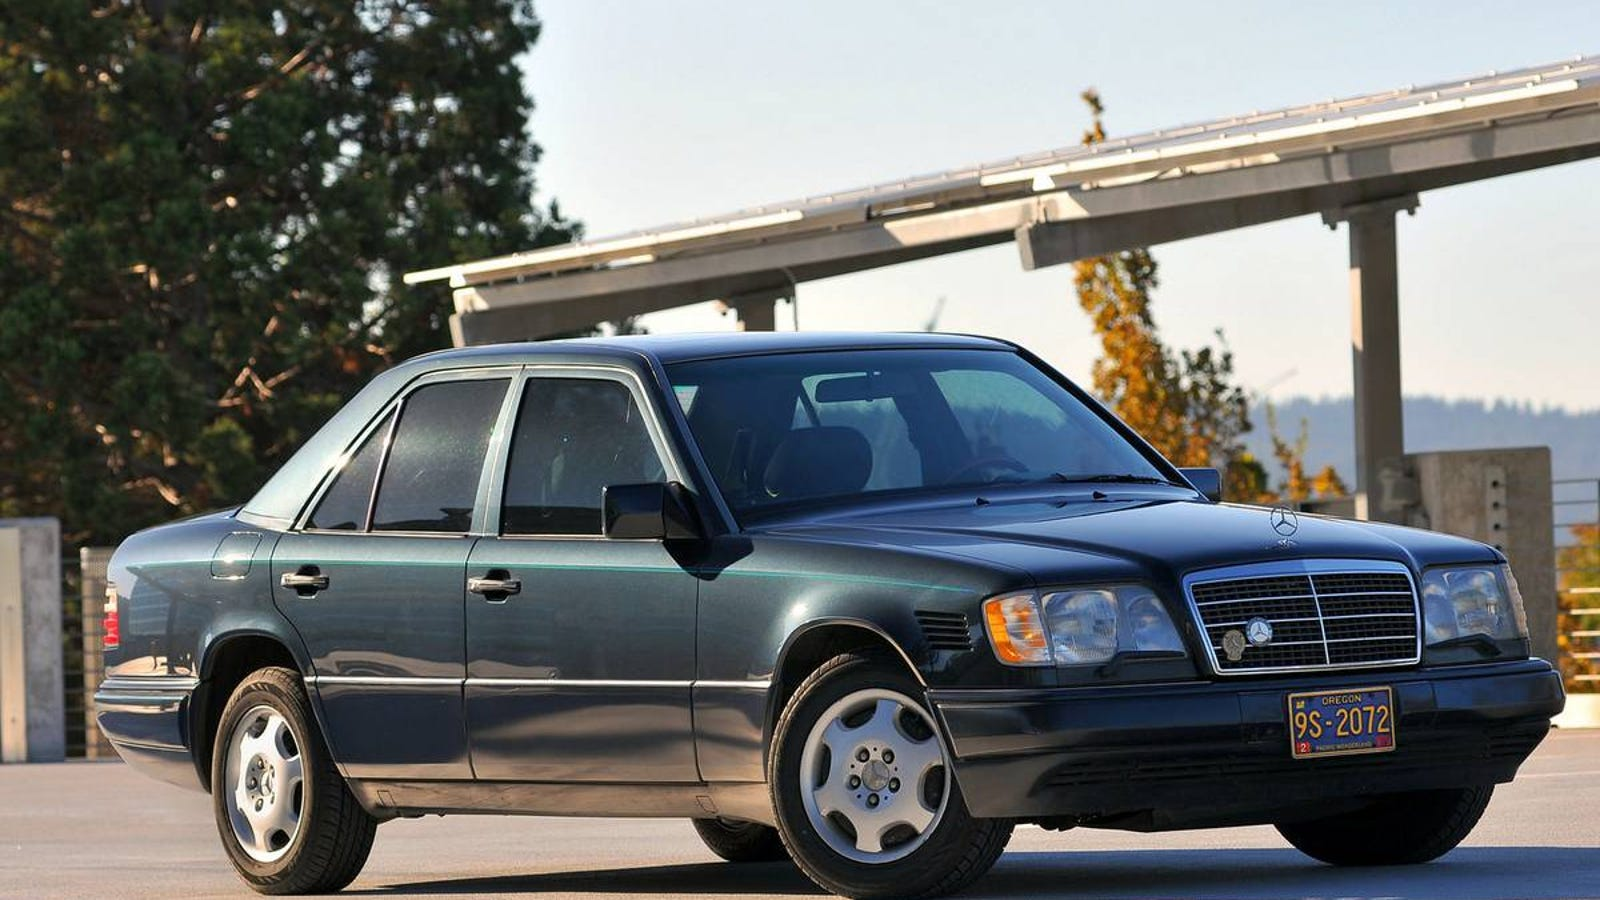 At $7,000, Could This High-Mileage 1995 Mercedes-Benz E300D Still